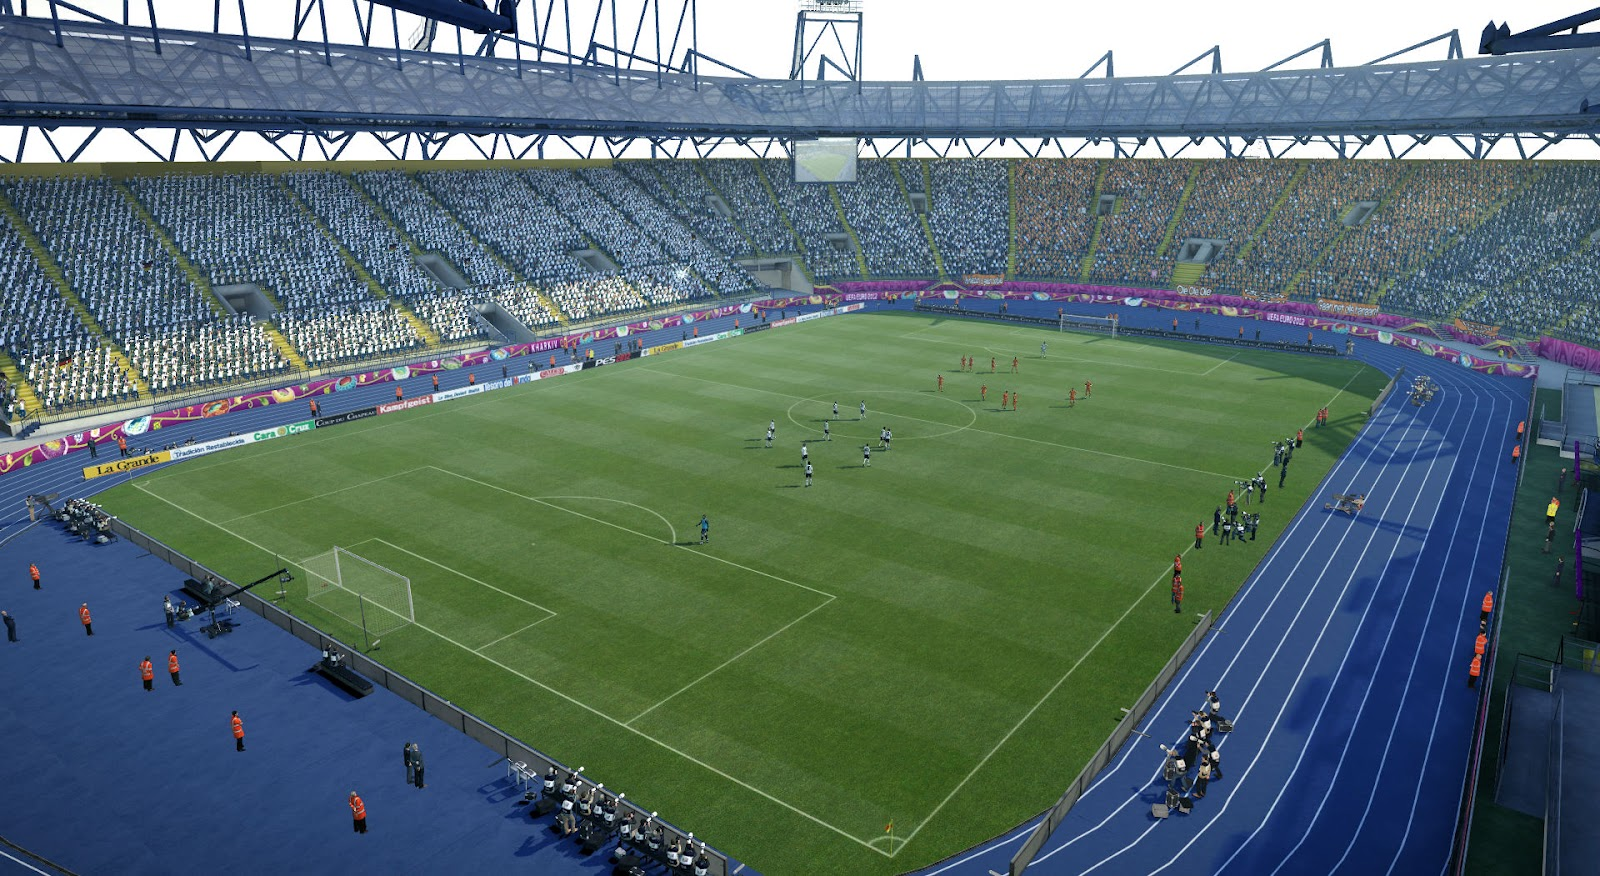 Metalist Stadium (EURO2012) by jnny